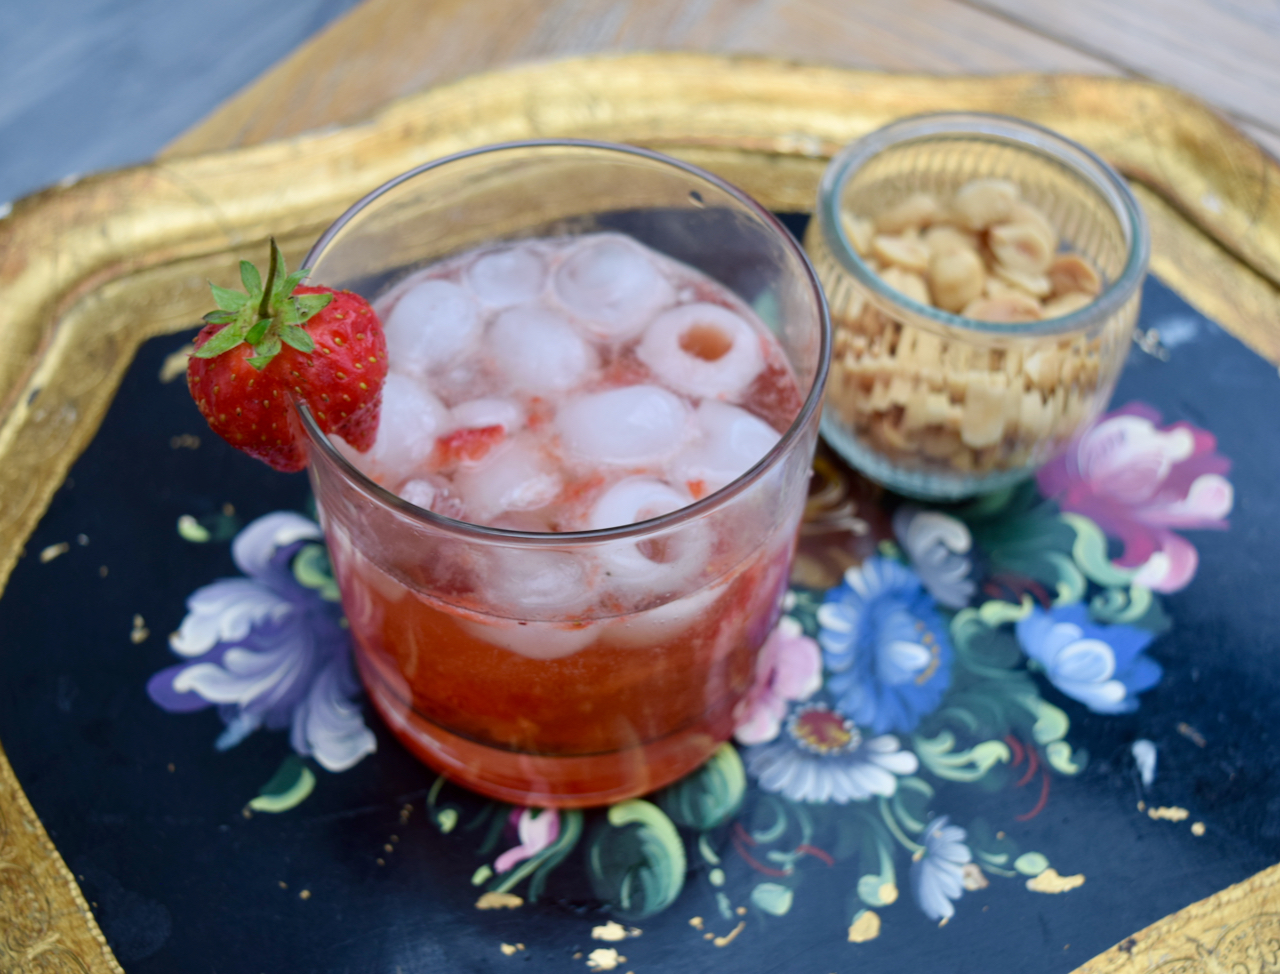 Kentucky Kiss recipe from Lucy Loves Food Blog